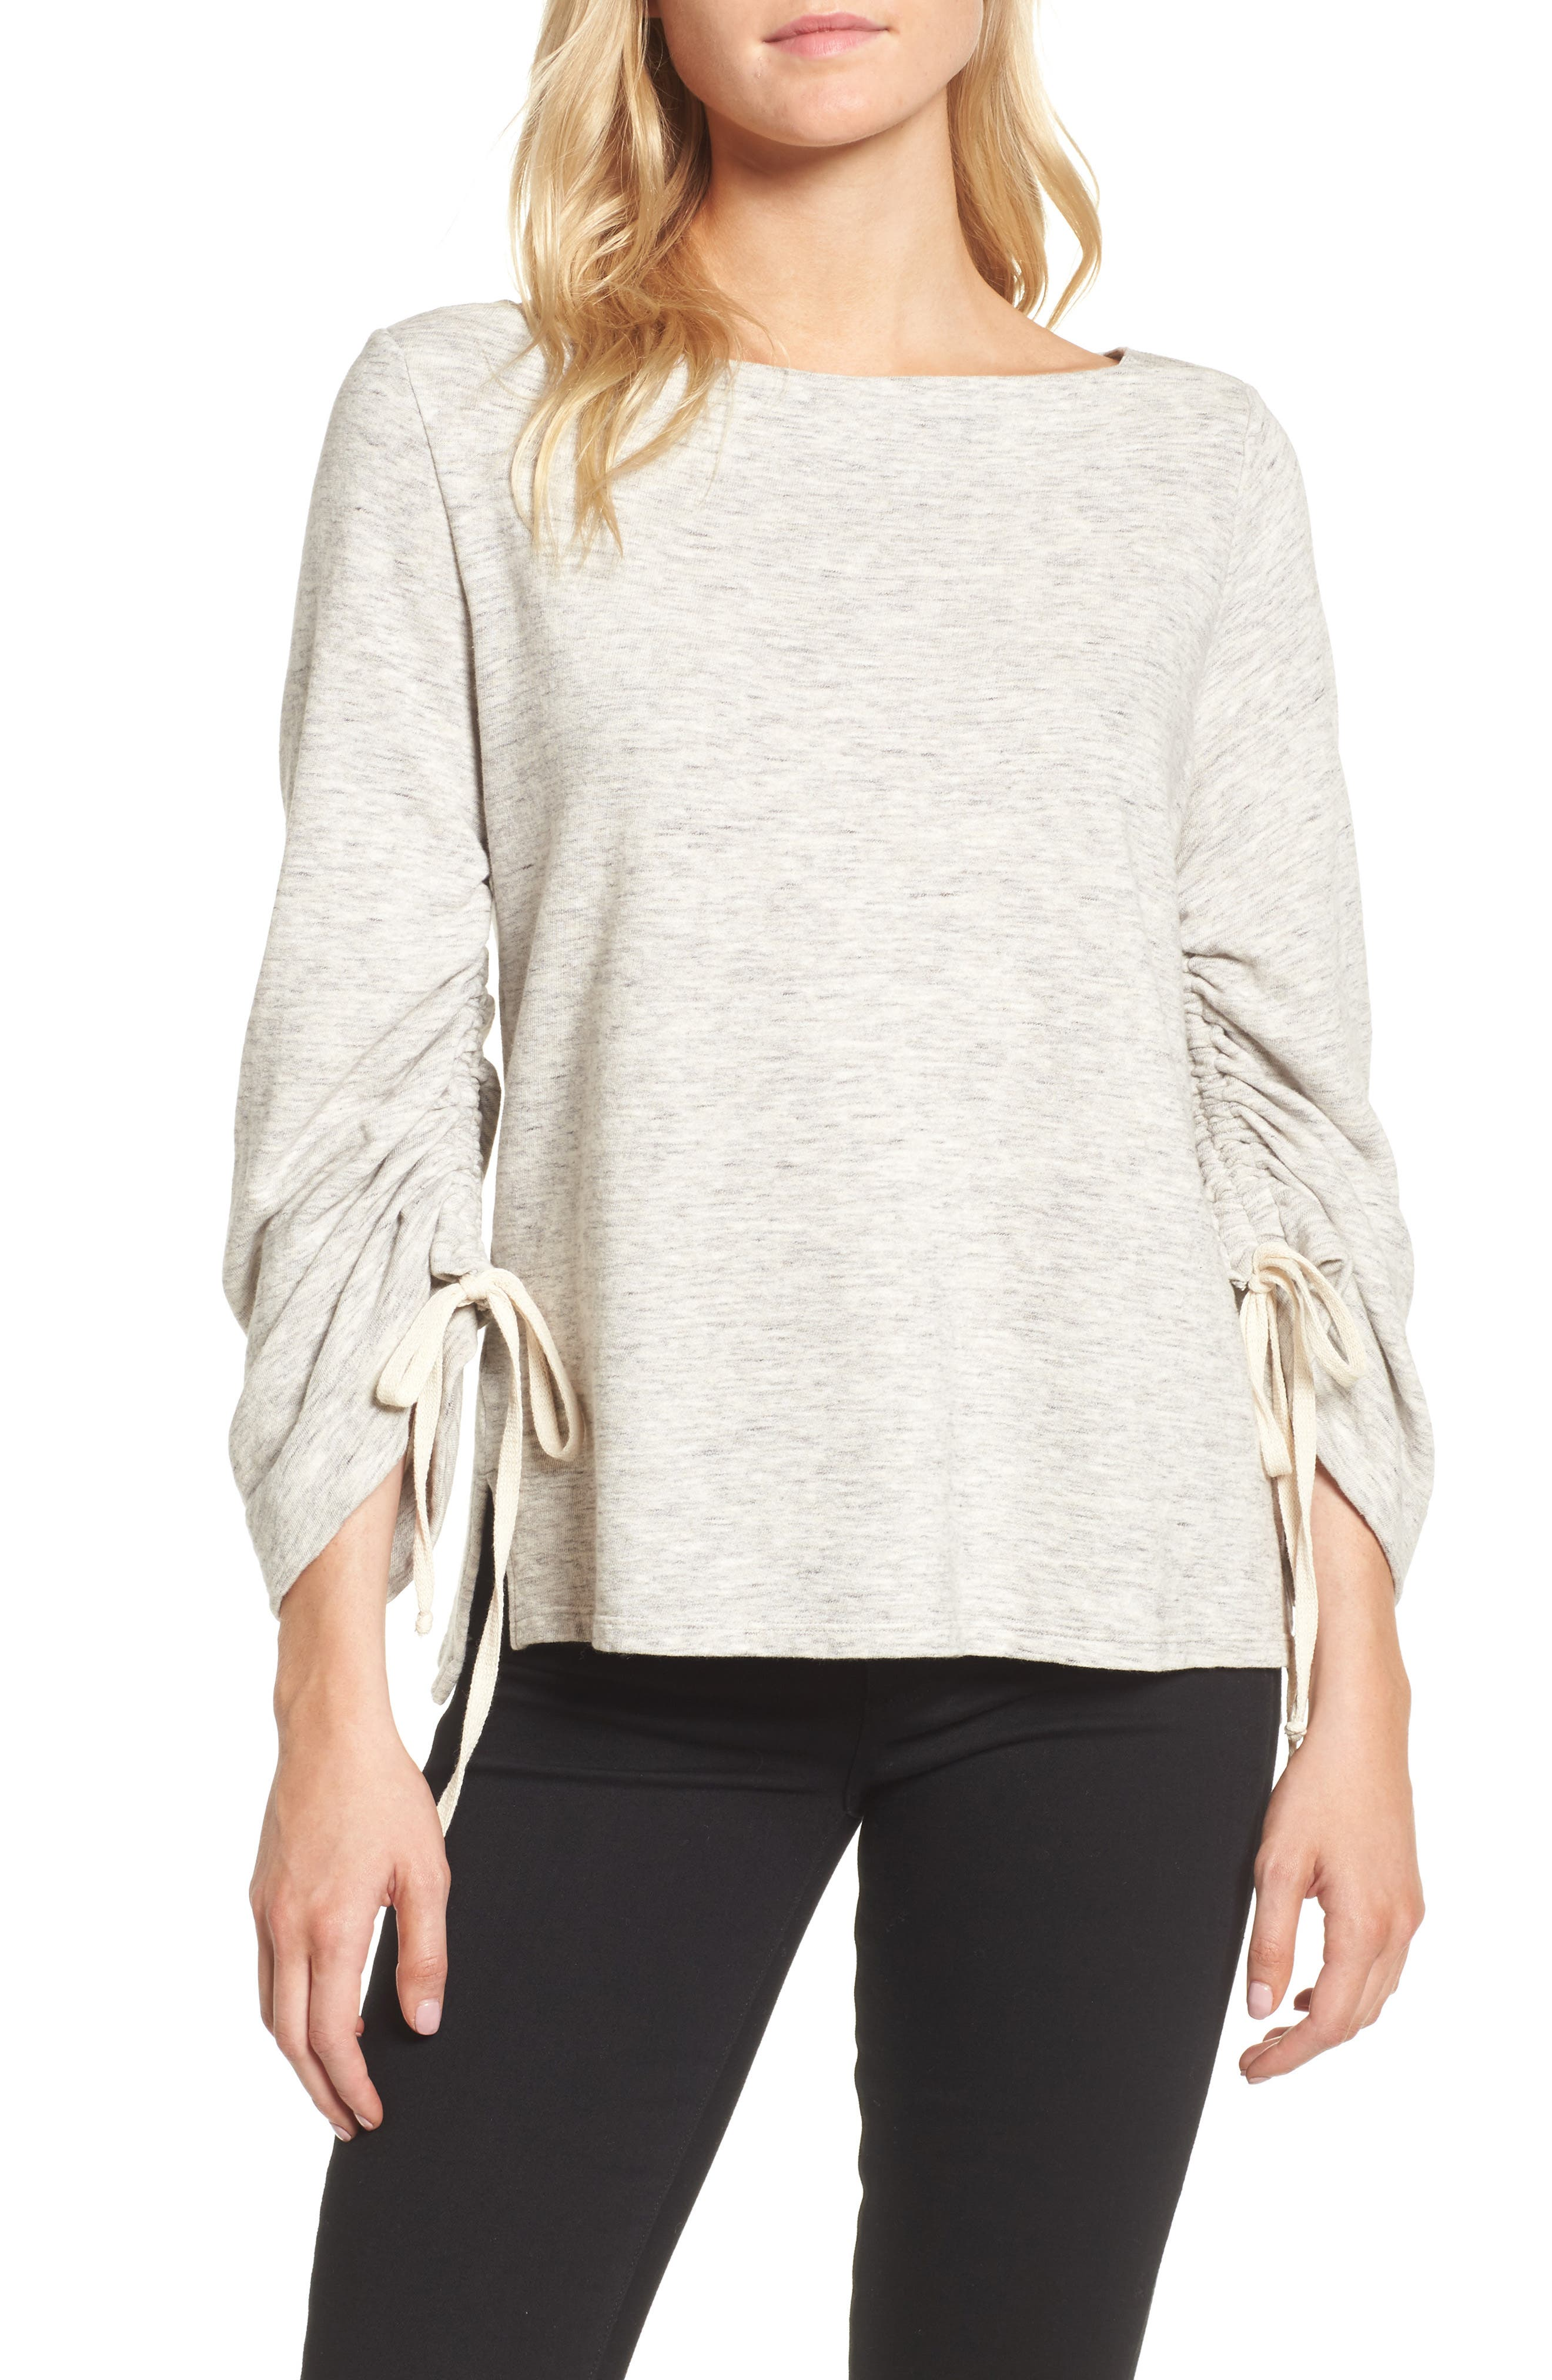 Ruched Sleeve Sweatshirt,                         Main,                         color, Heather Grey